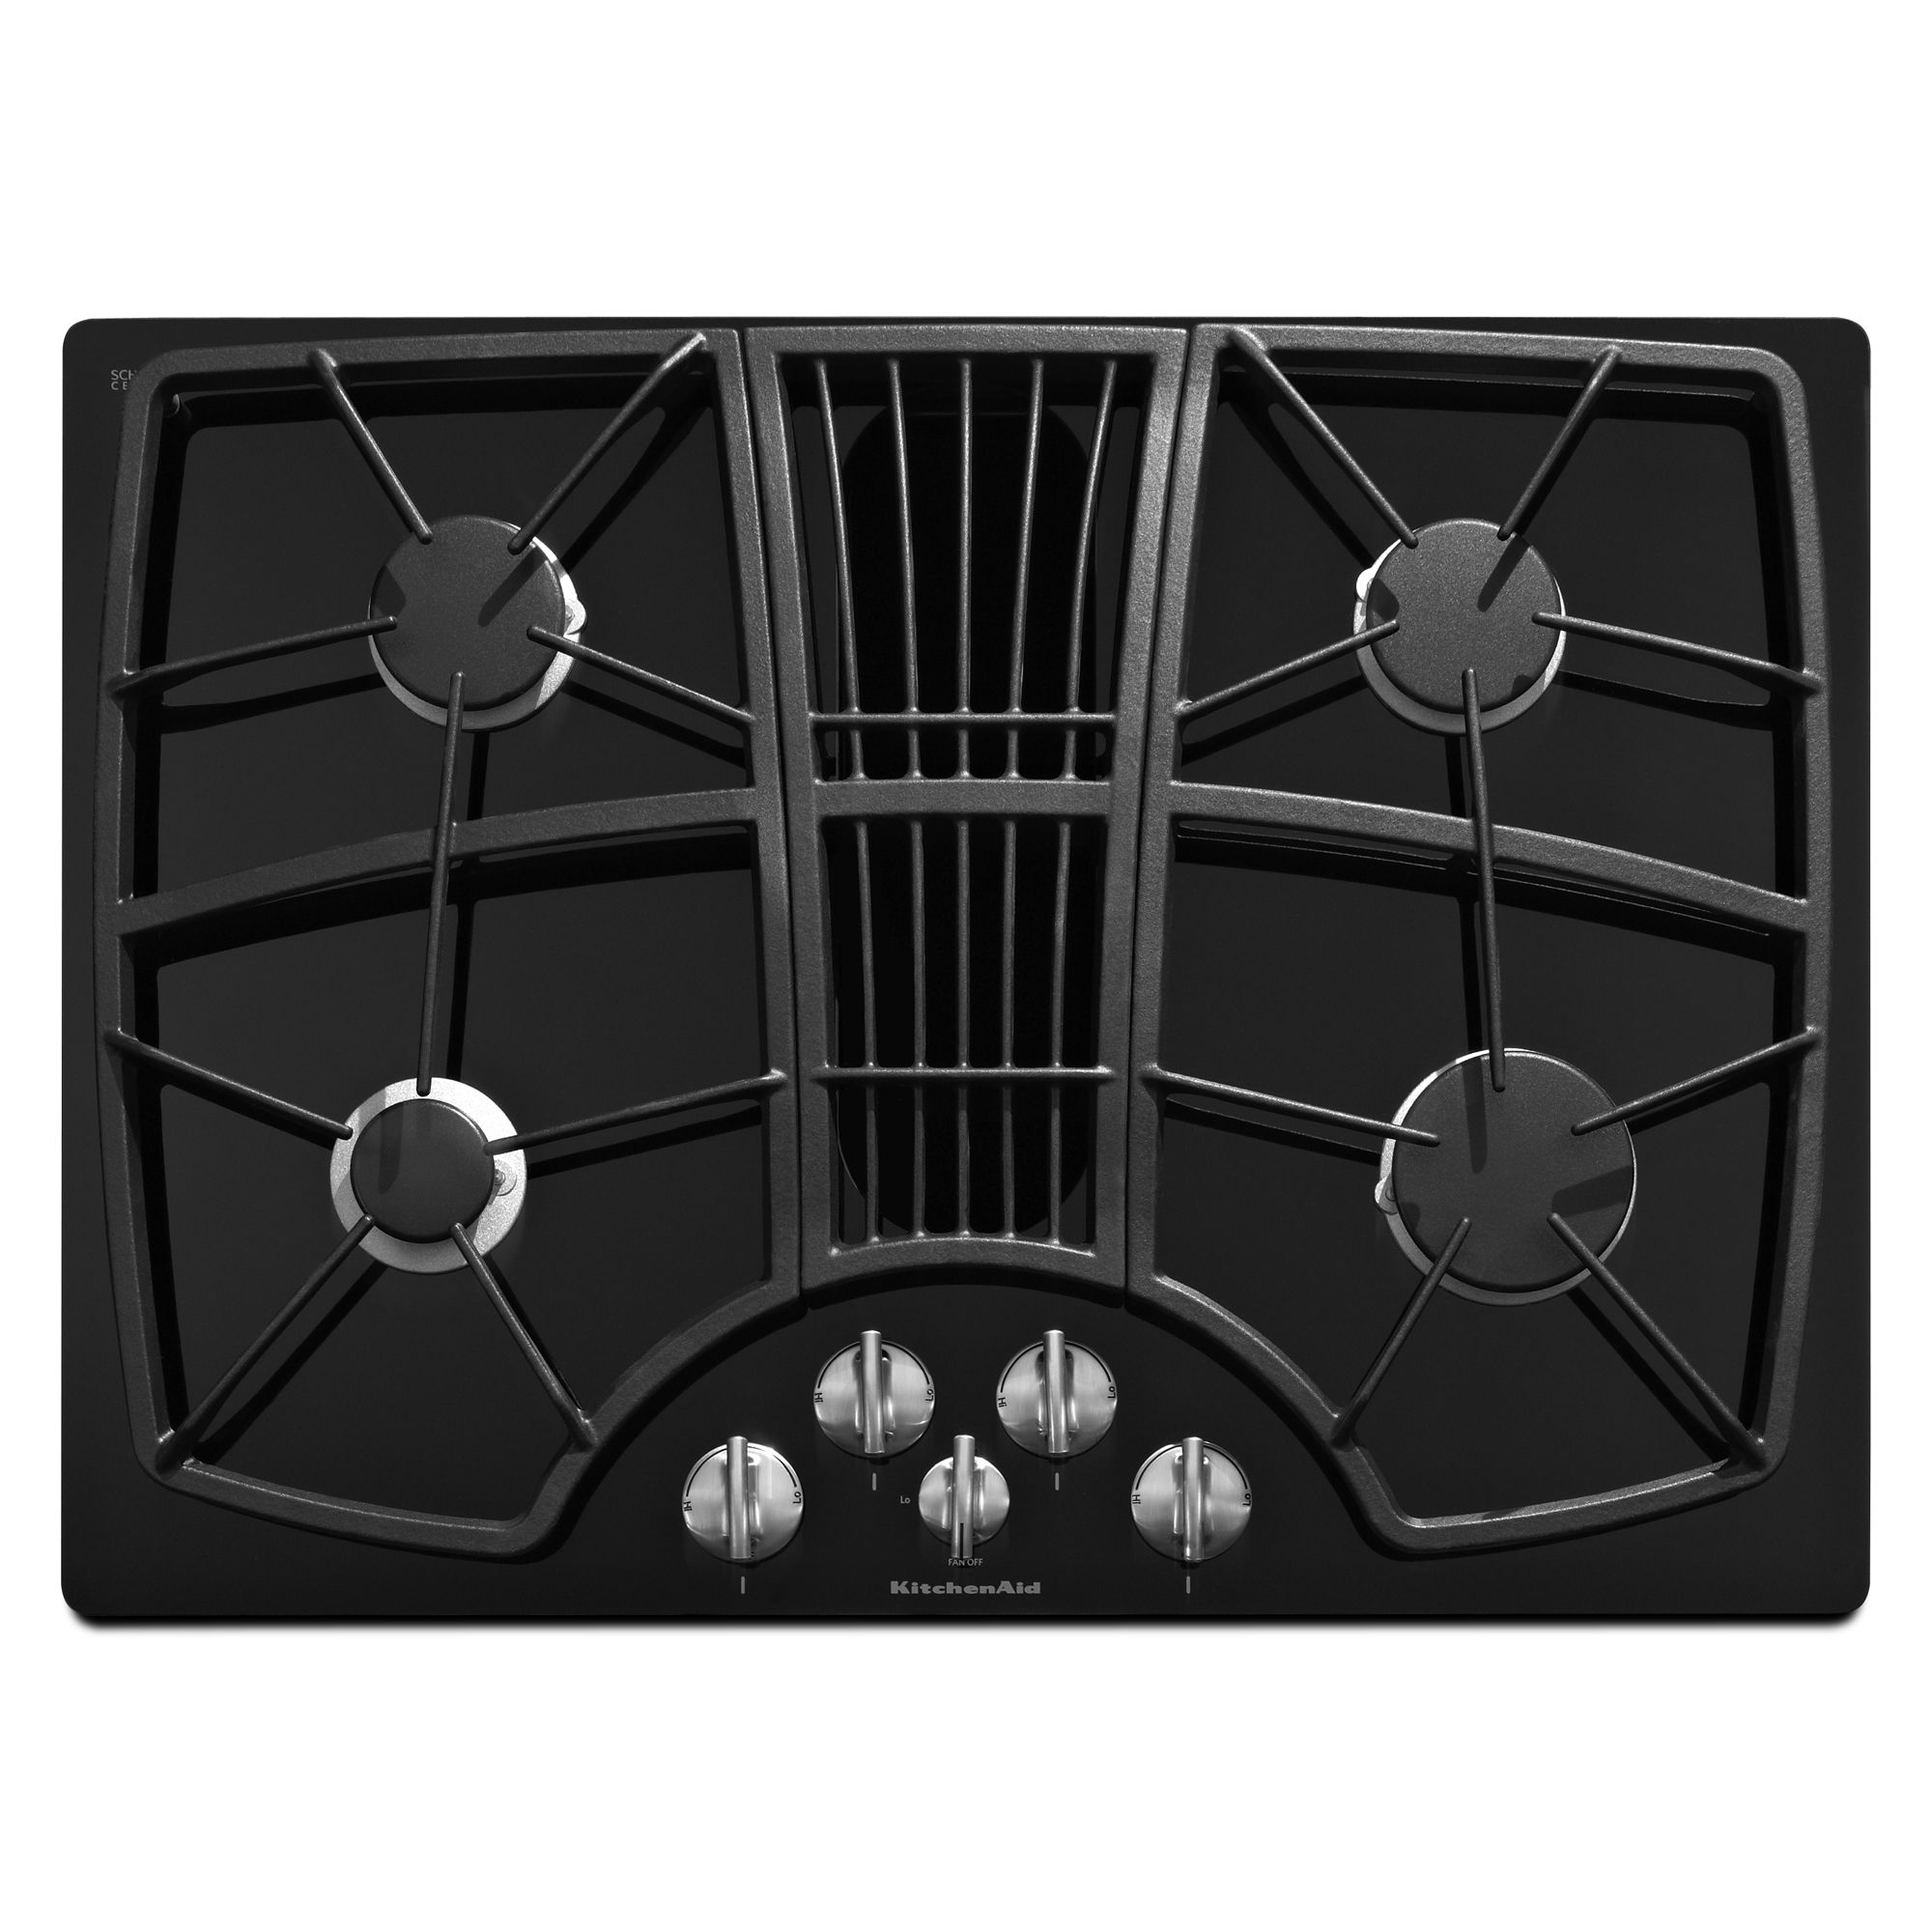 KitchenAid KGCD807XBL 30 4-Burner Downdraft Cooktop